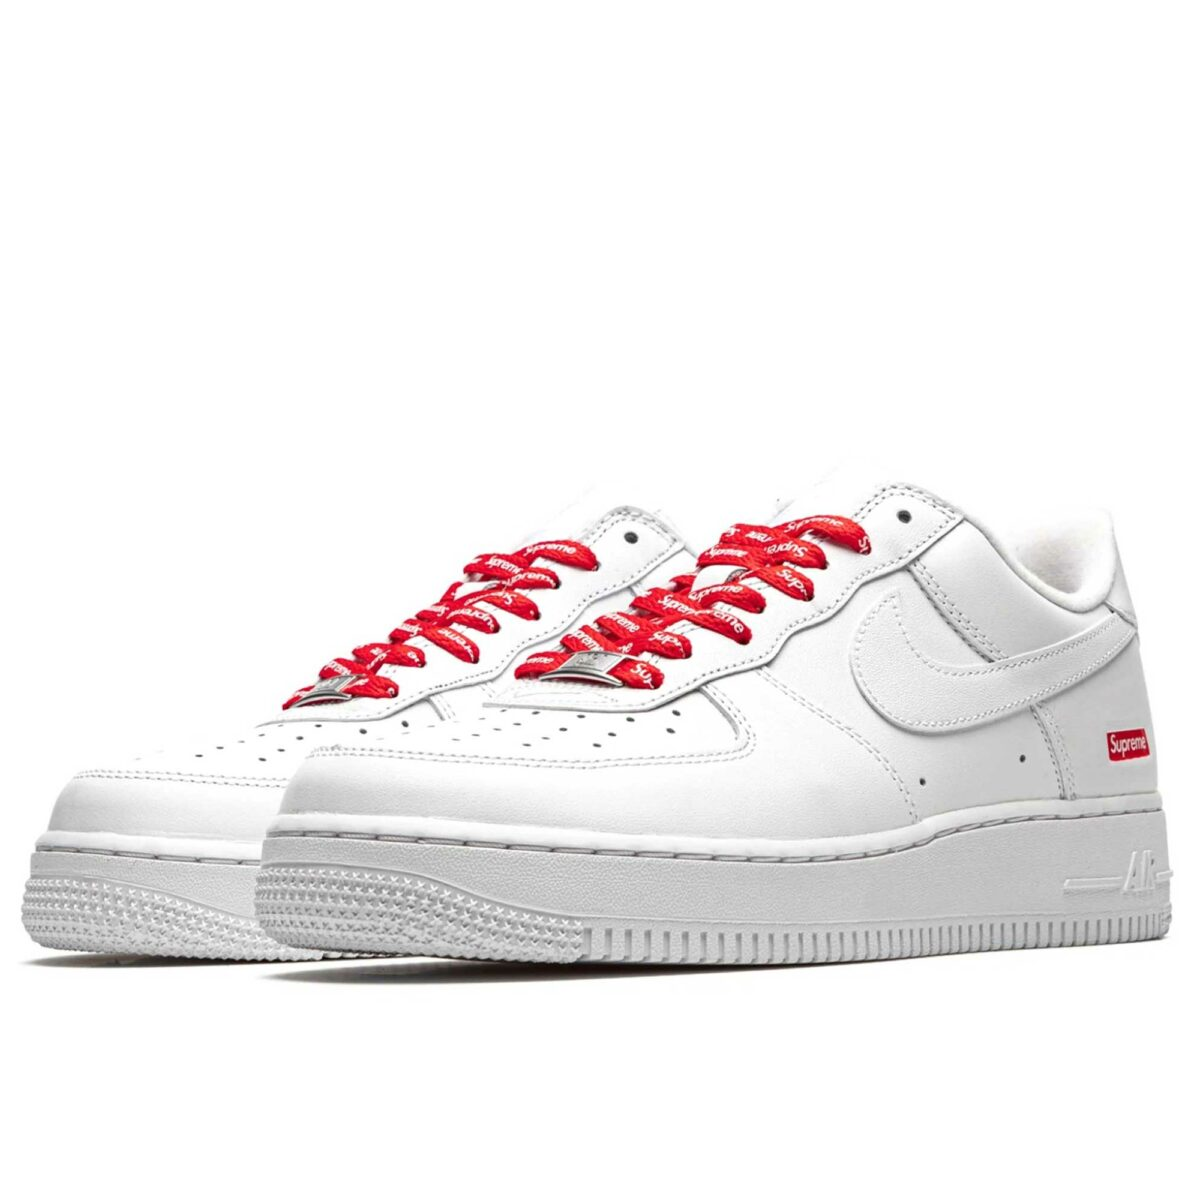 nike air force 1 low supreme mini box logo white CU9225_100 купить